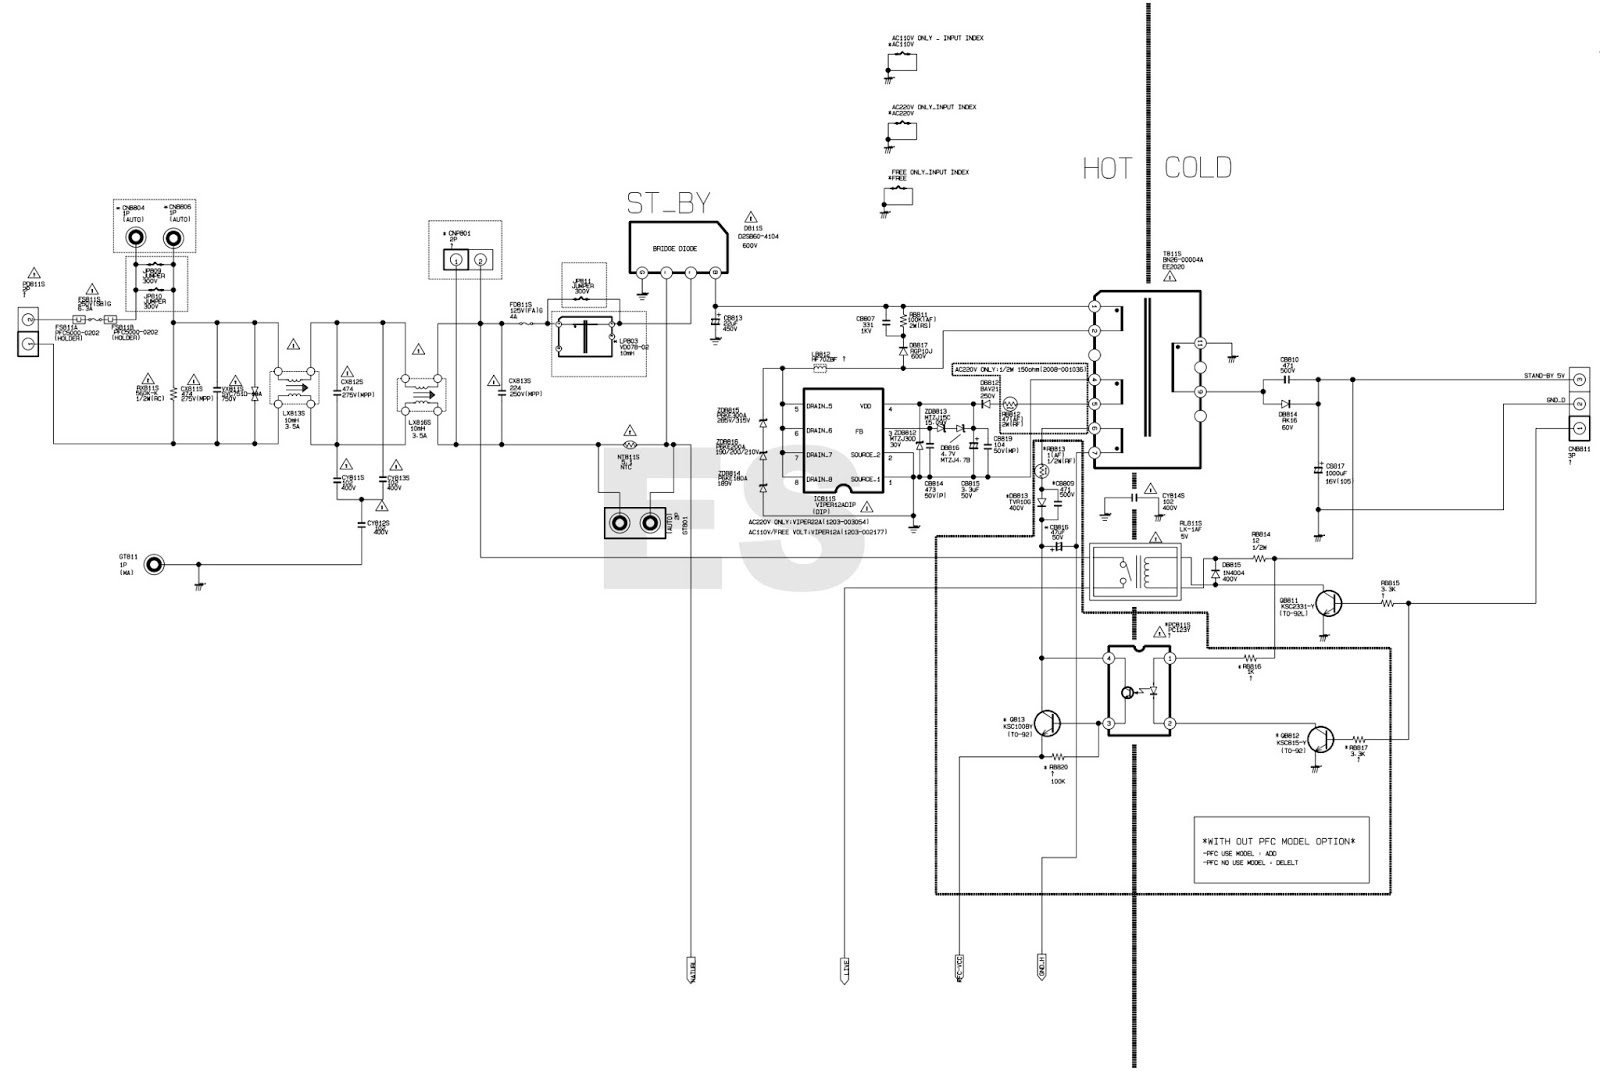 electronic equipment repair centre samsung bn44 00622b power supply board schematic diagram viper12a [ 1600 x 1085 Pixel ]